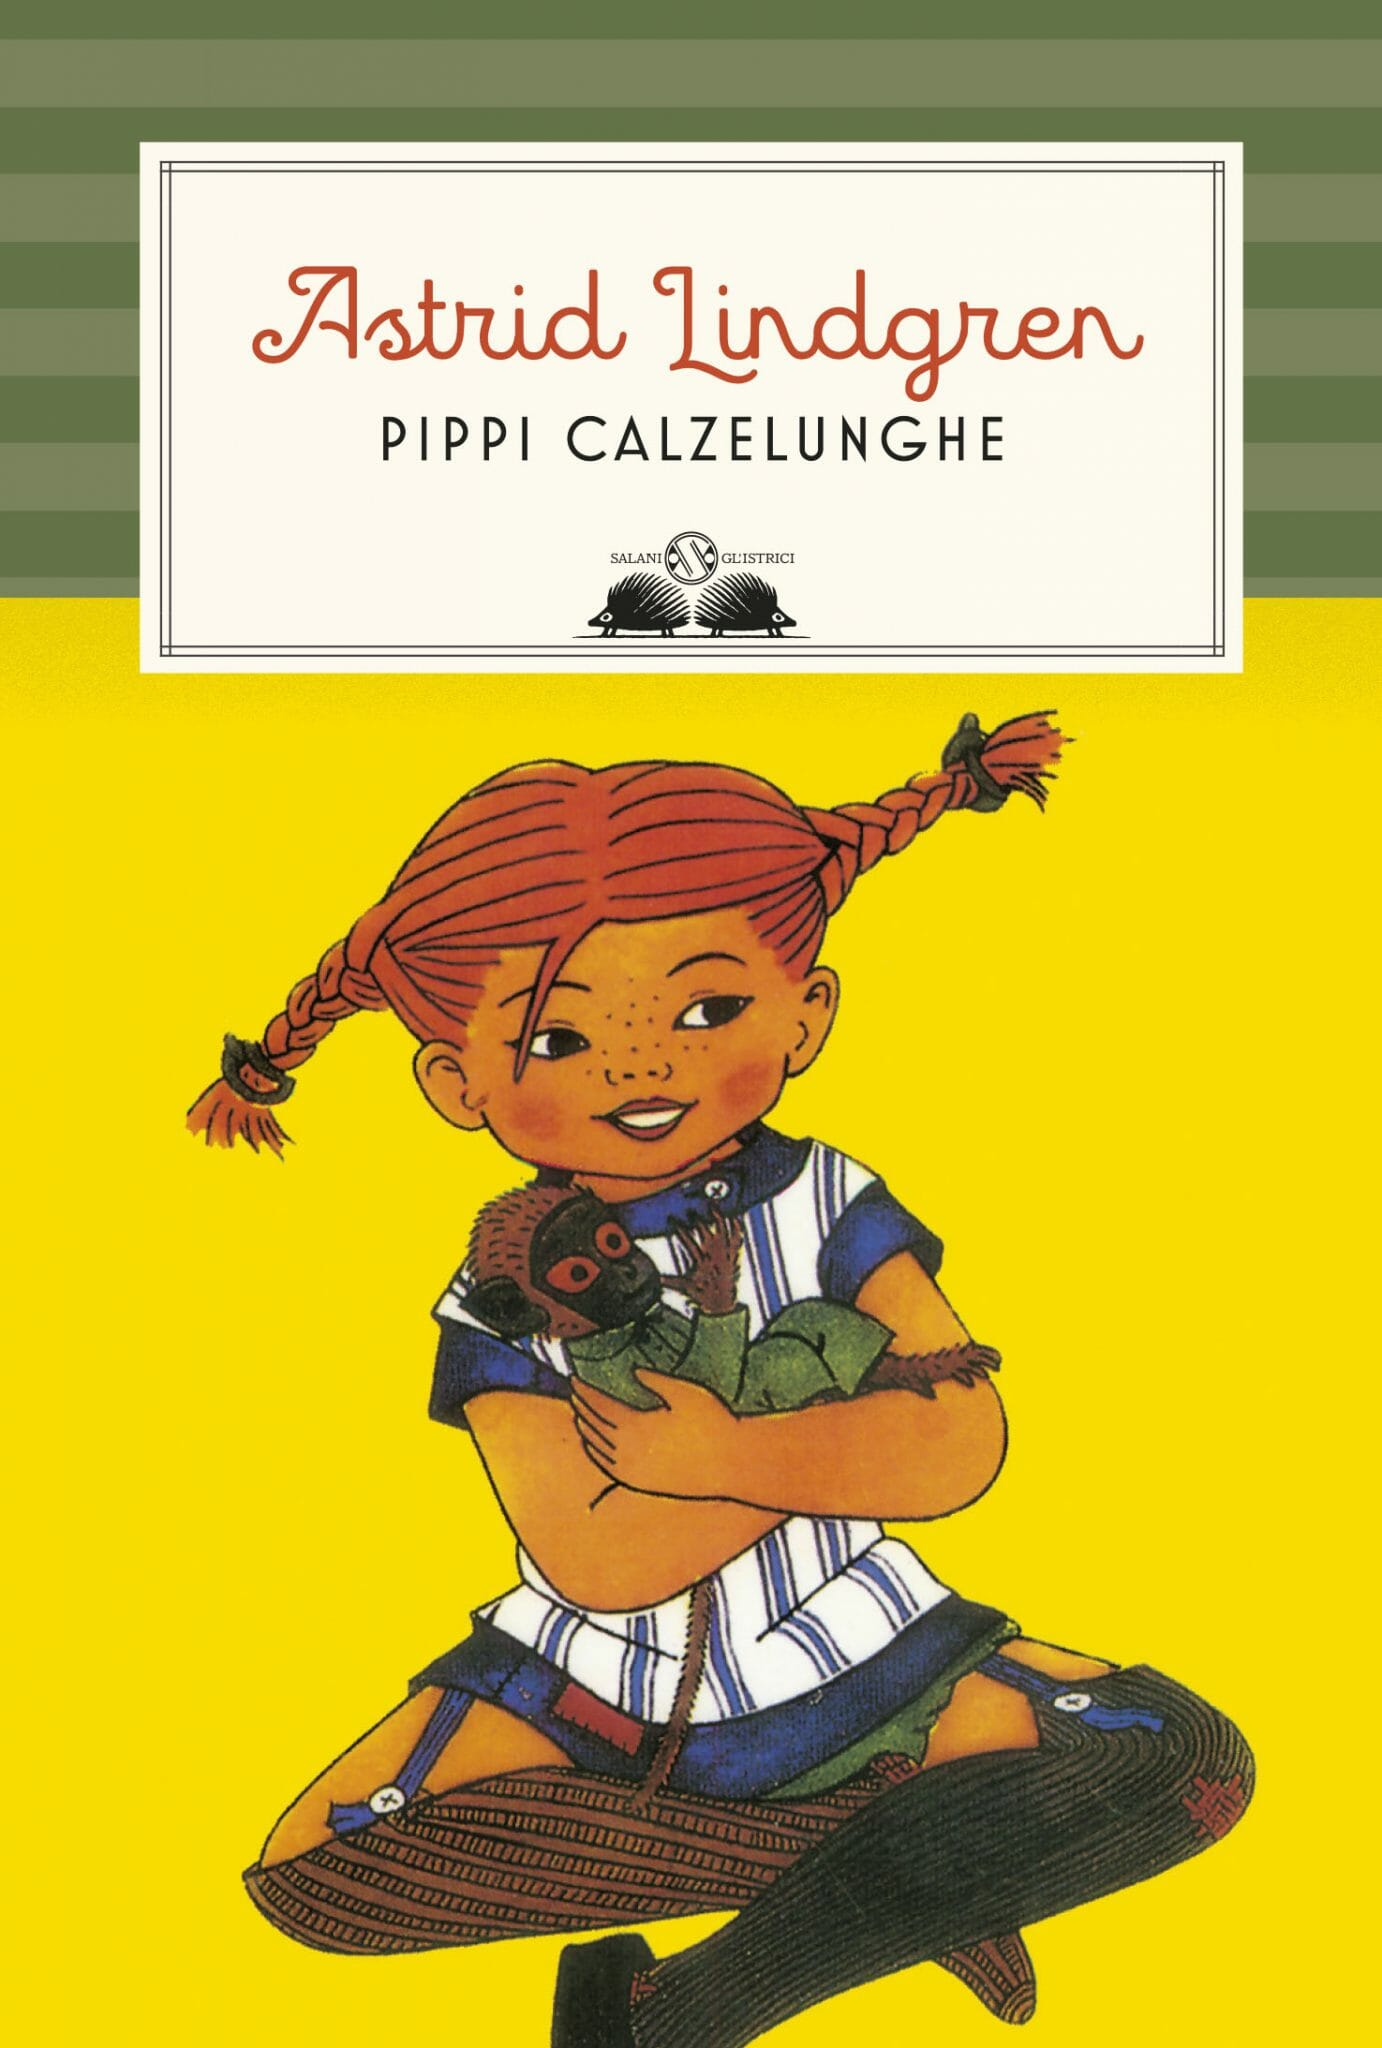 Pippi calzelunghe_Esec.indd